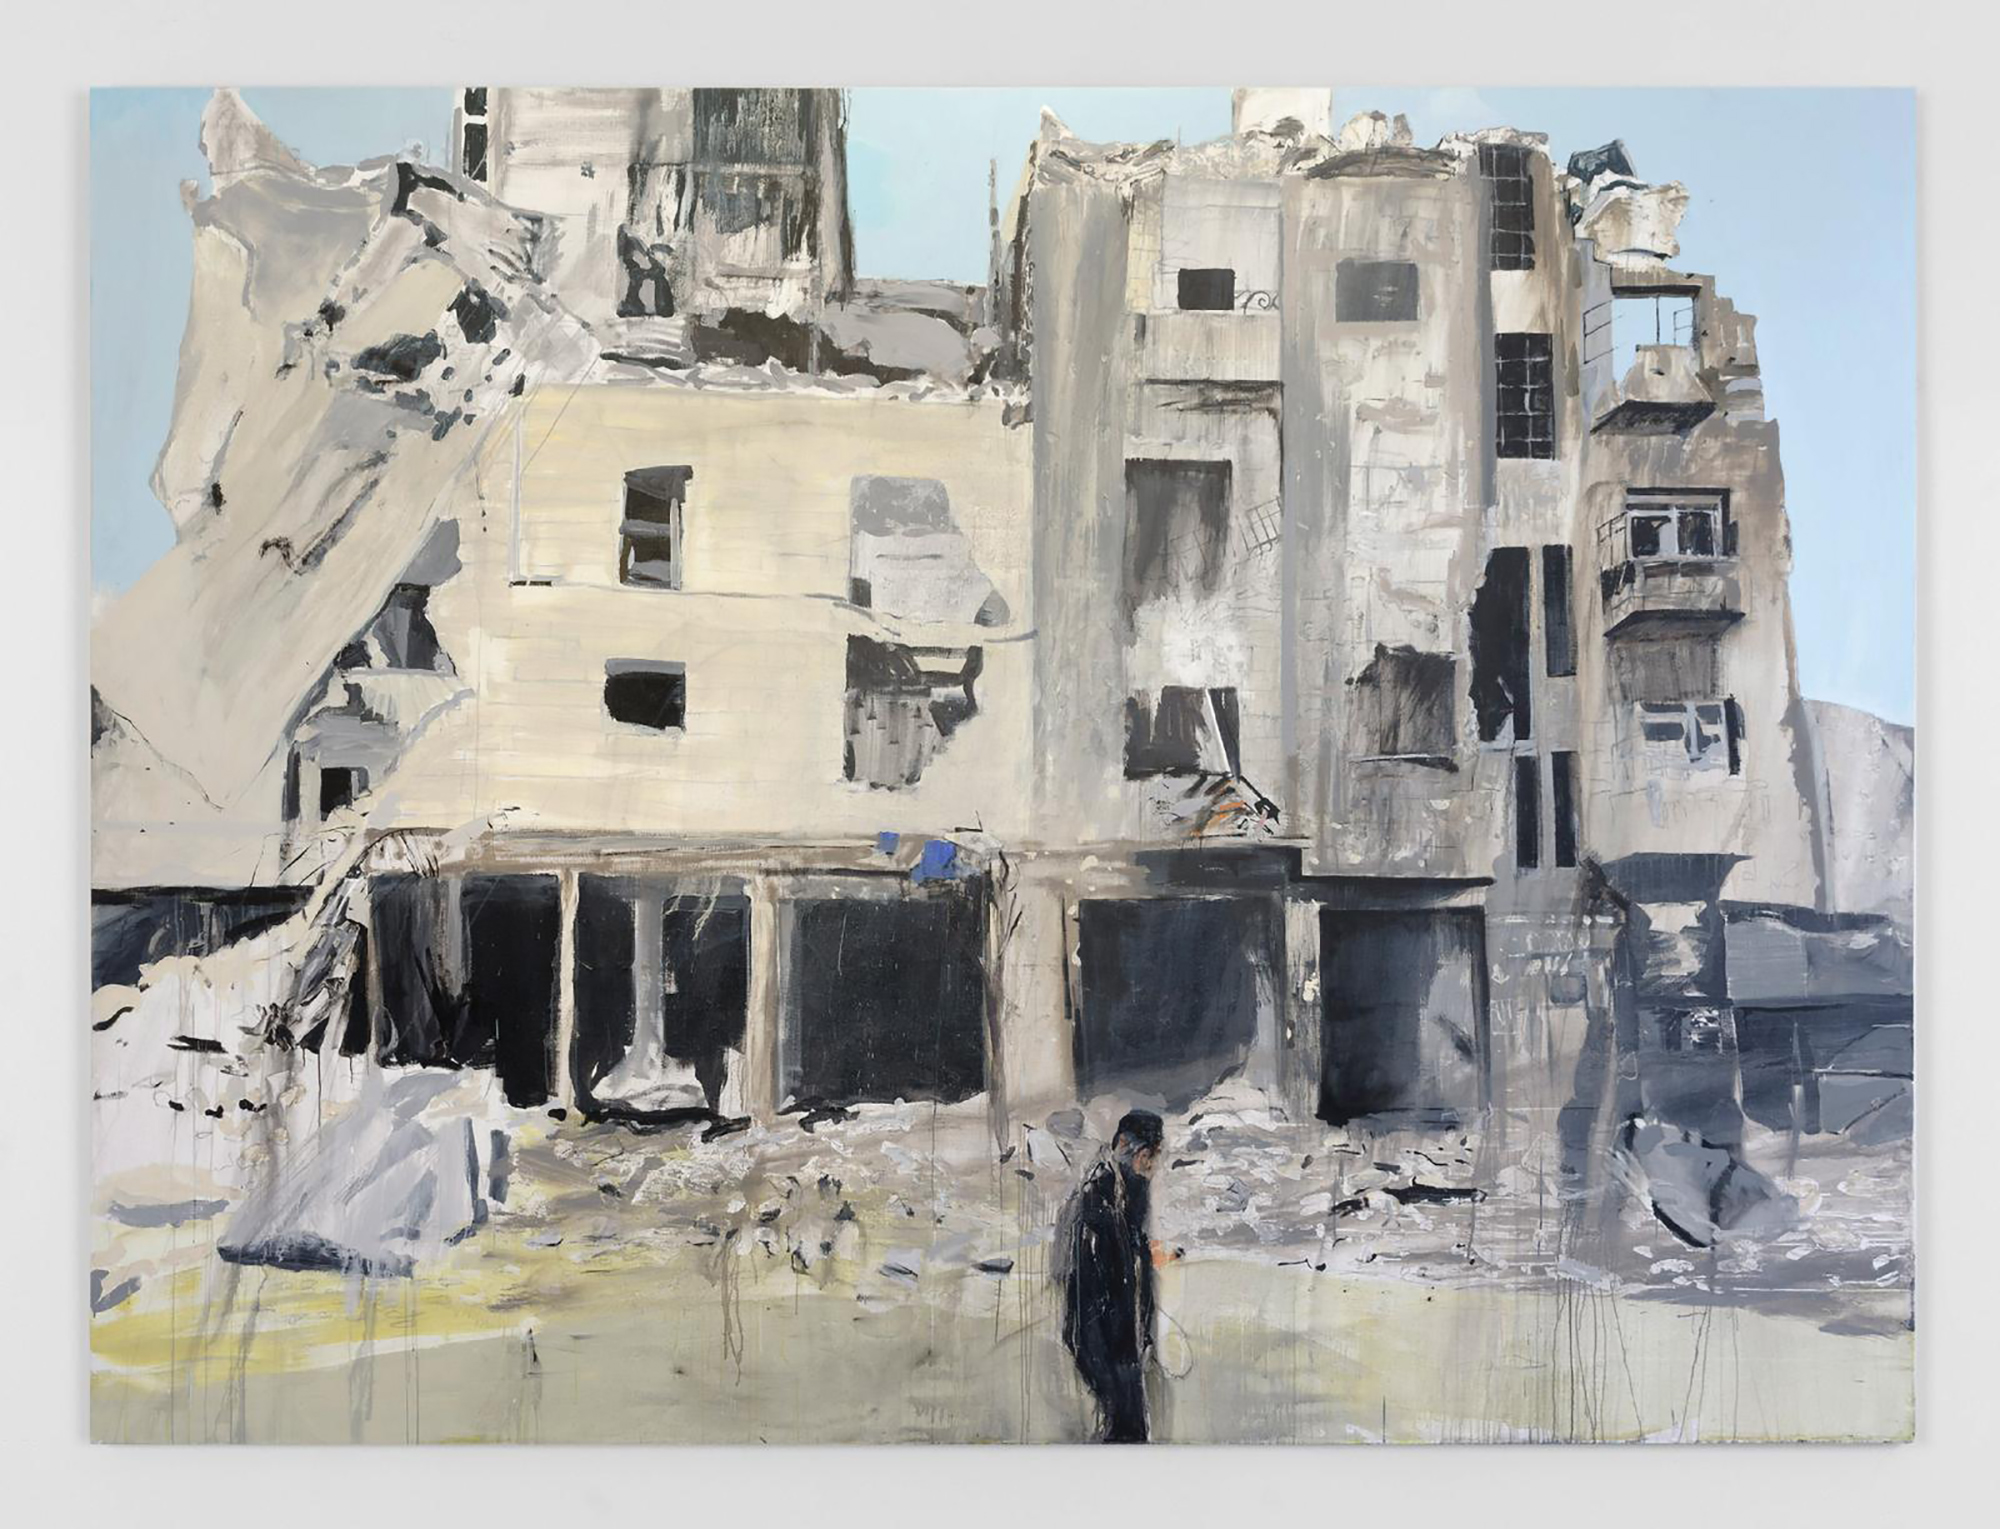 Aleppo 5 , 2017, acrylic on linen, 387 x 290 cm. Photo credit:  Kerlin Gallery